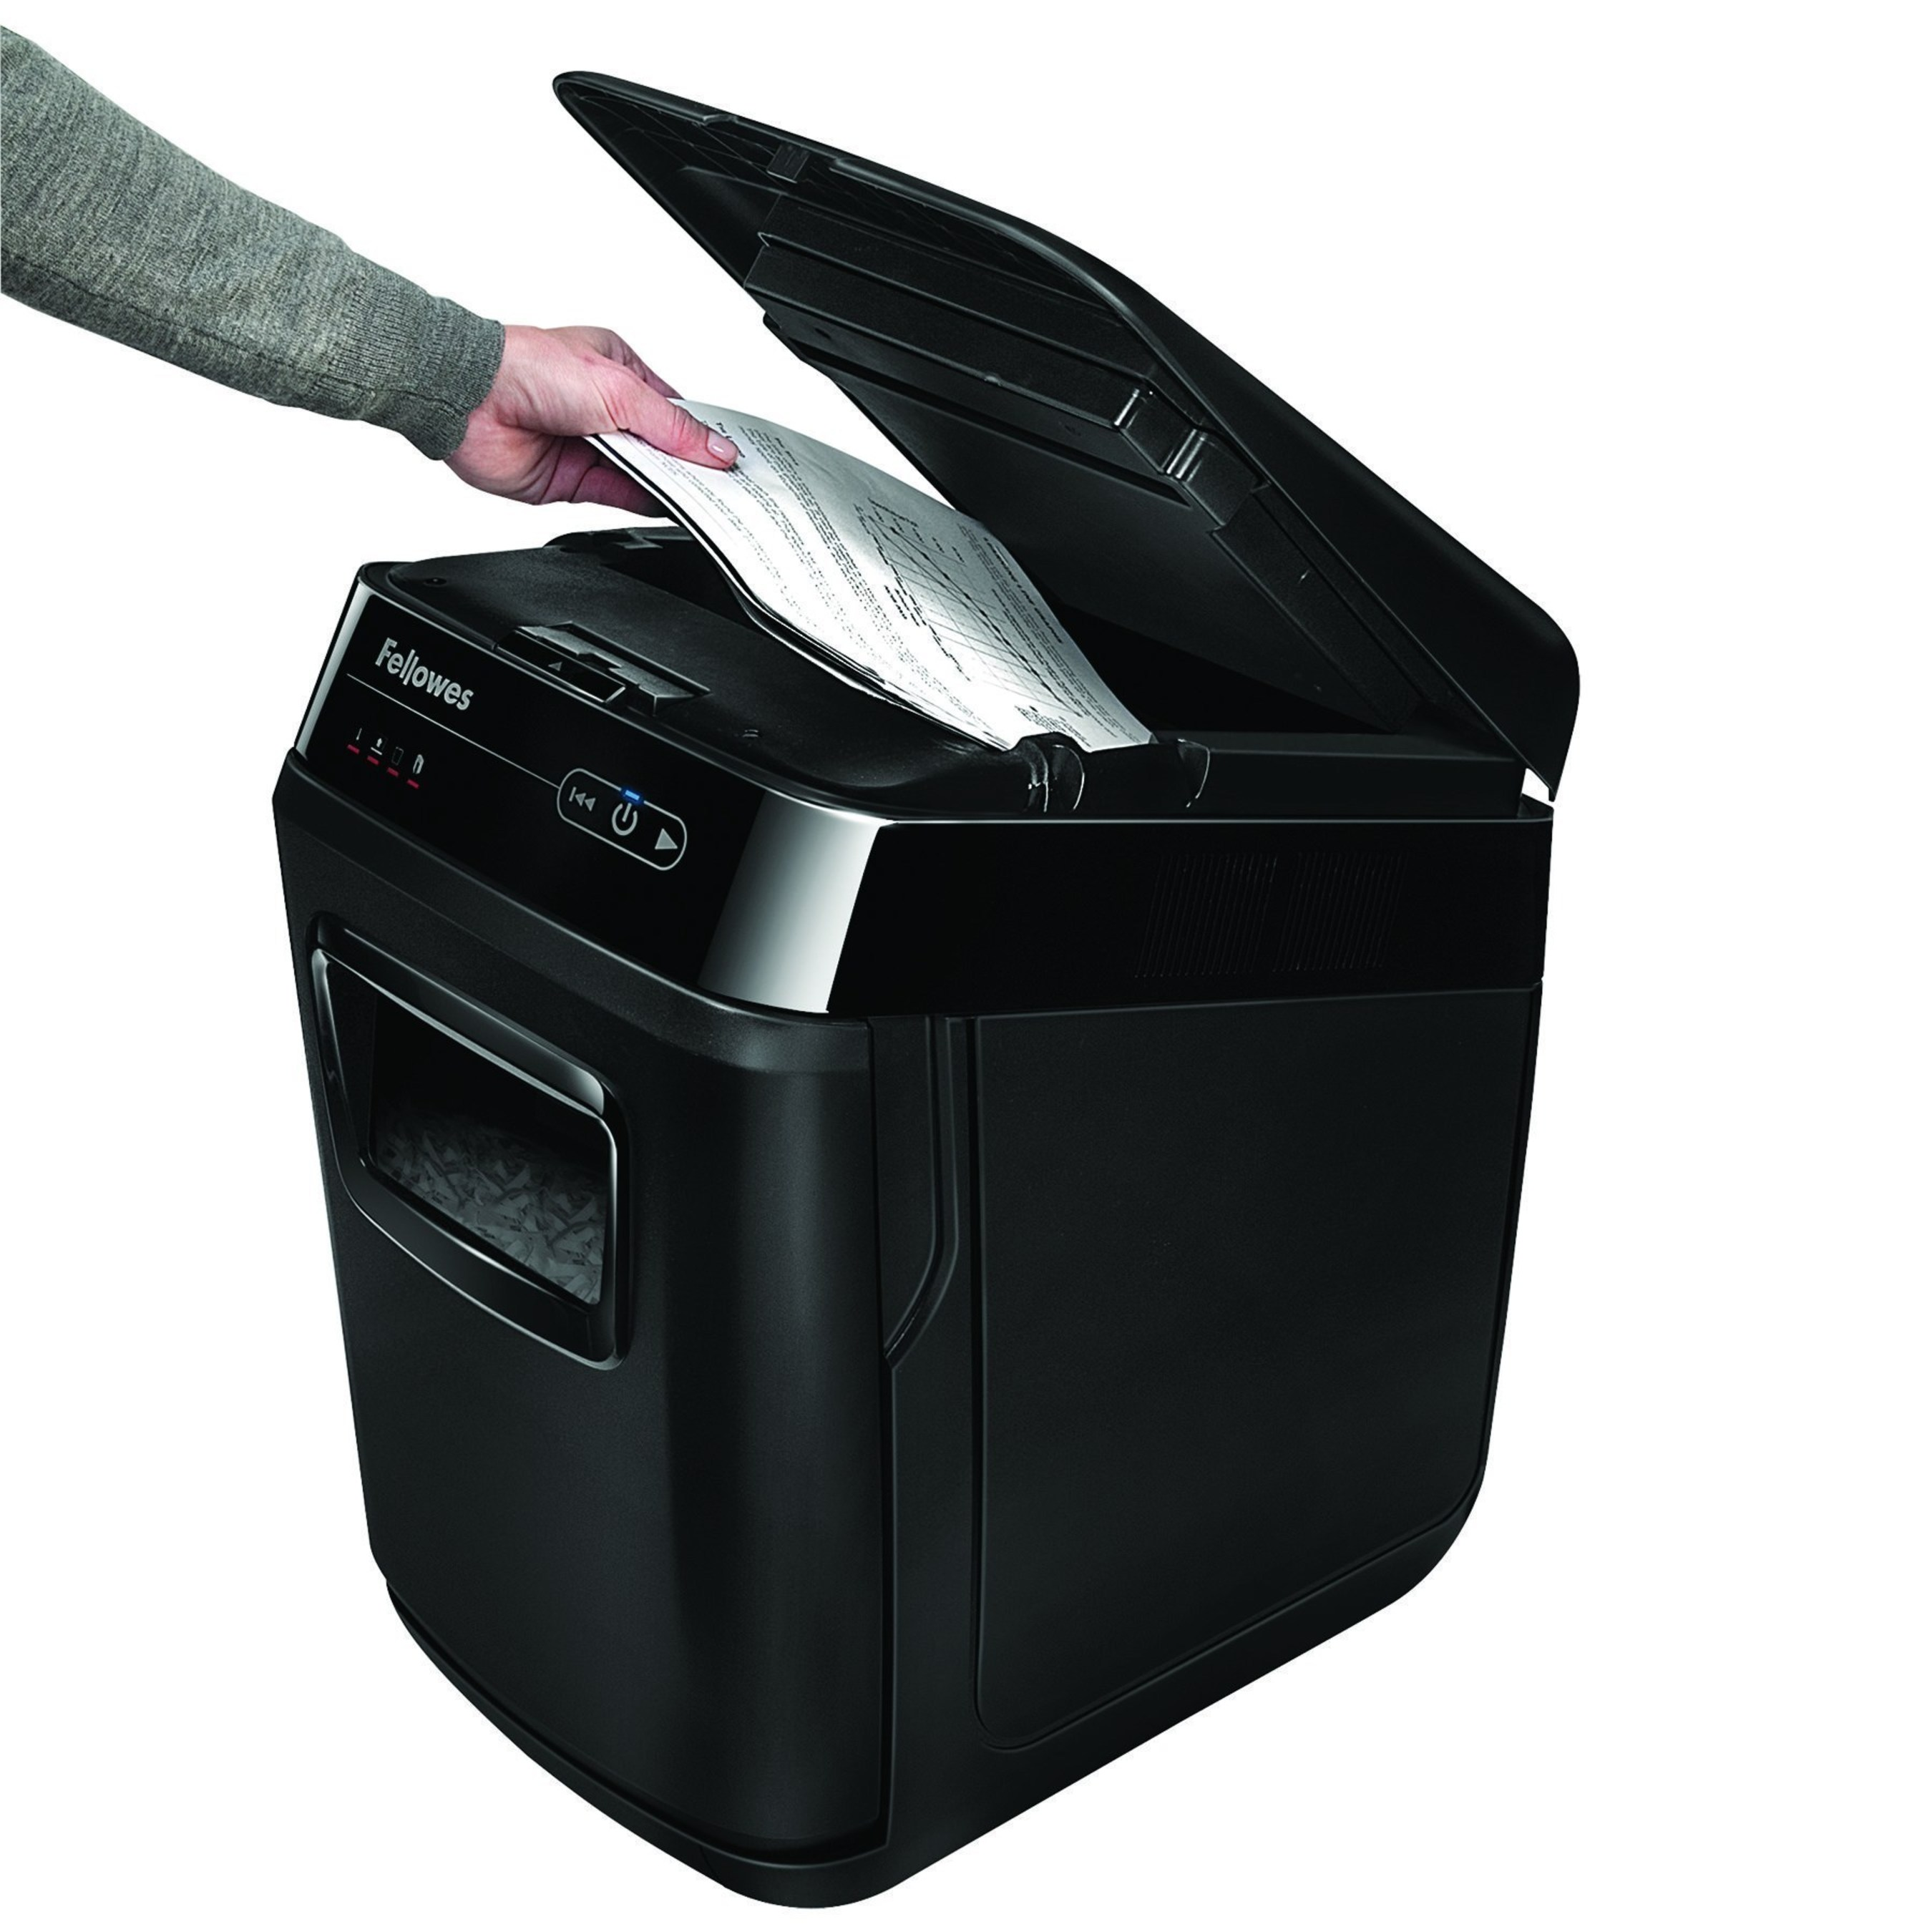 paper shredder business Find paper shredder and australian master tax guide from a vast selection of business get great deals on ebay.